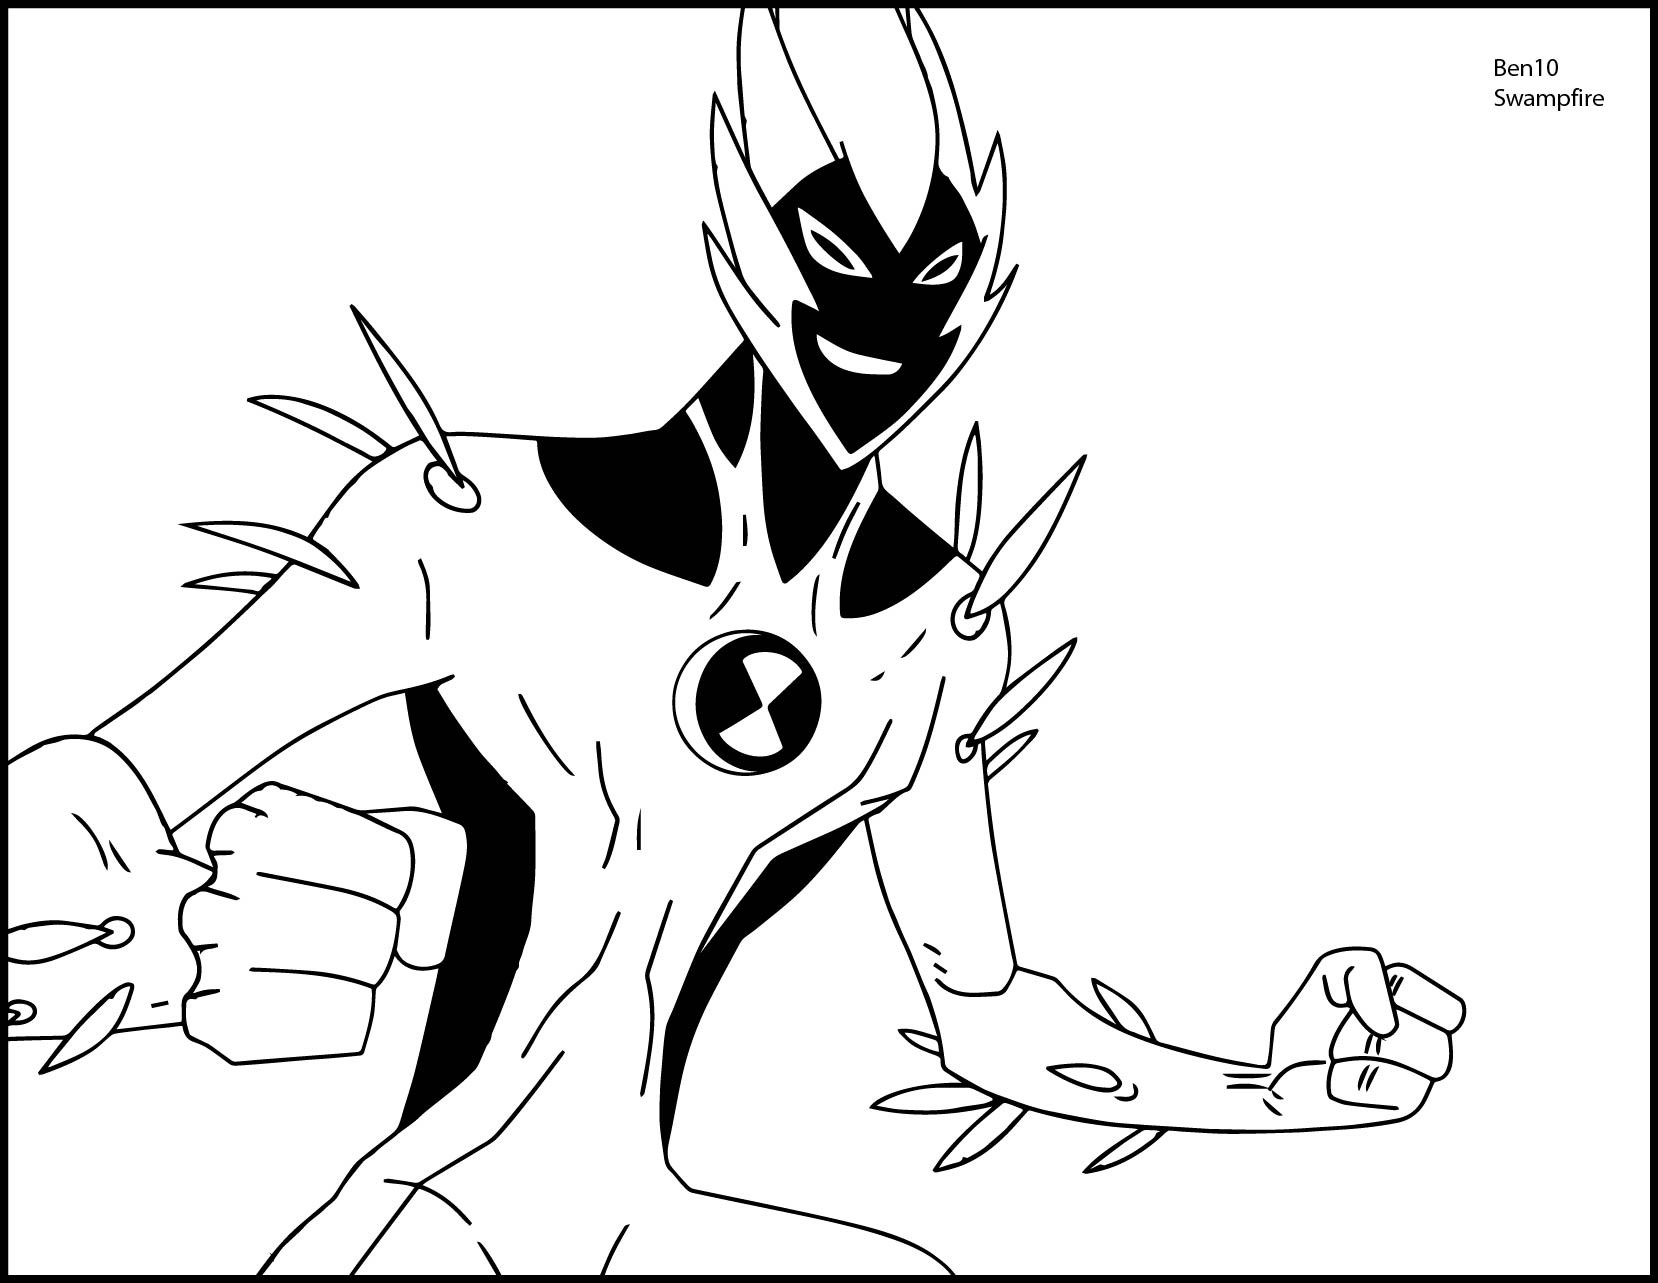 1658x1283 Charming Diamond Head Ben 10 Coloring Pages Gallery